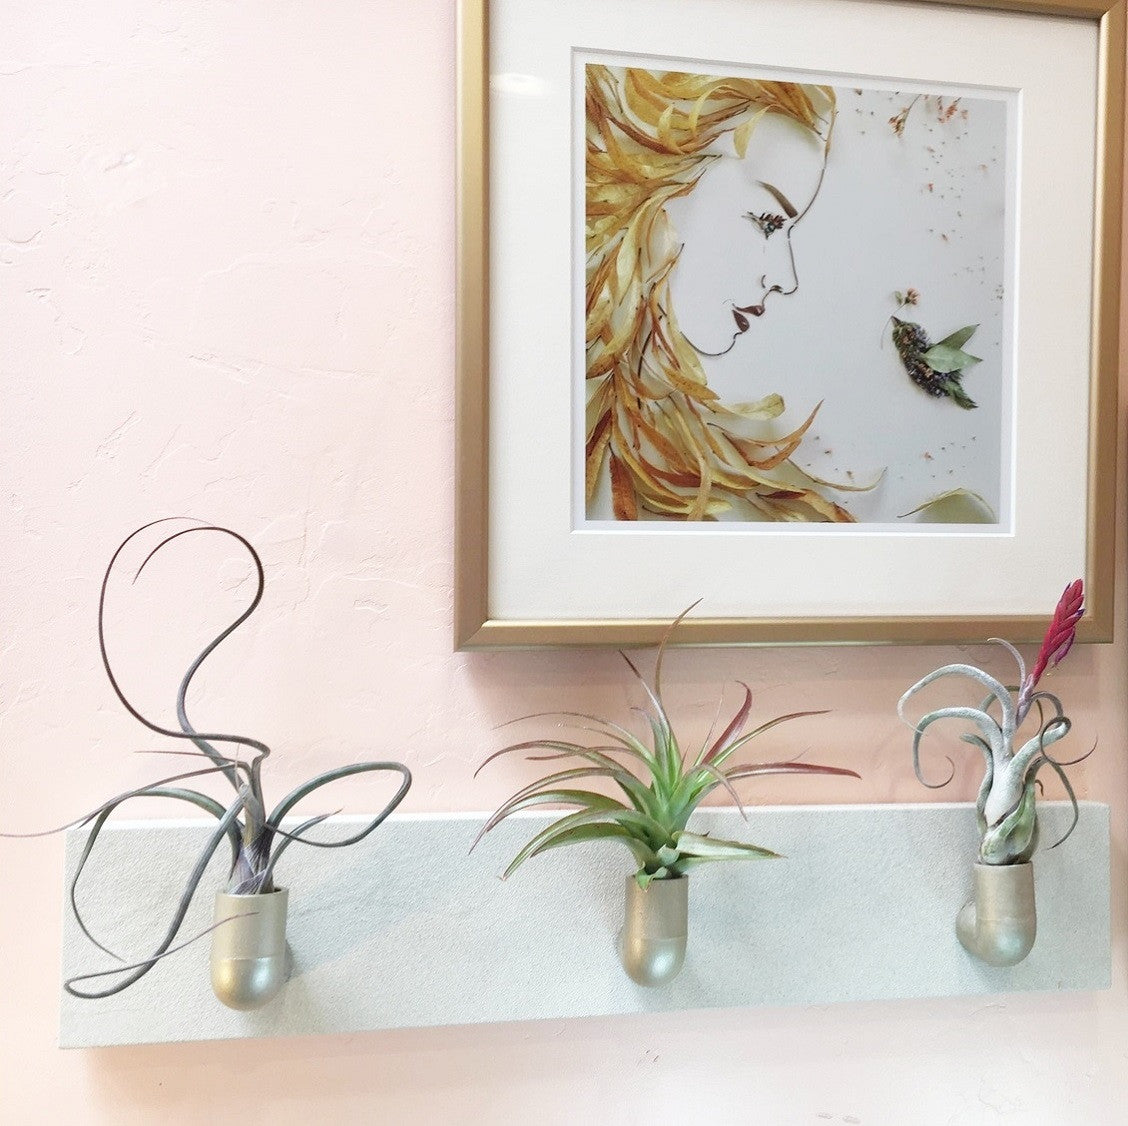 Tillandsia Wall Fountain - DIY Hanging Air Plants - Easy to Grow Bulbs